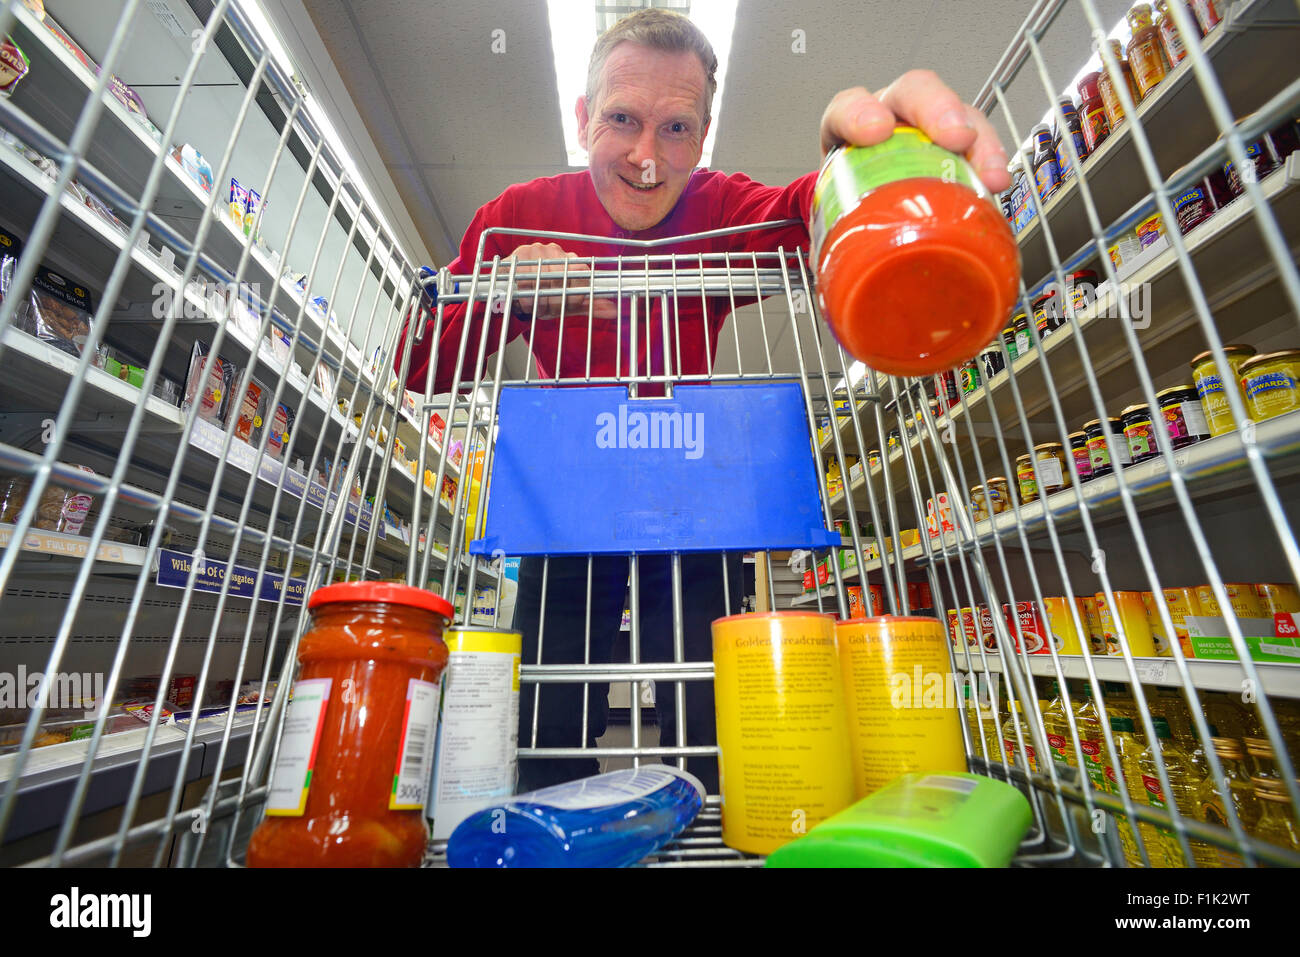 man shopping using trolley in supermarket - Stock Image